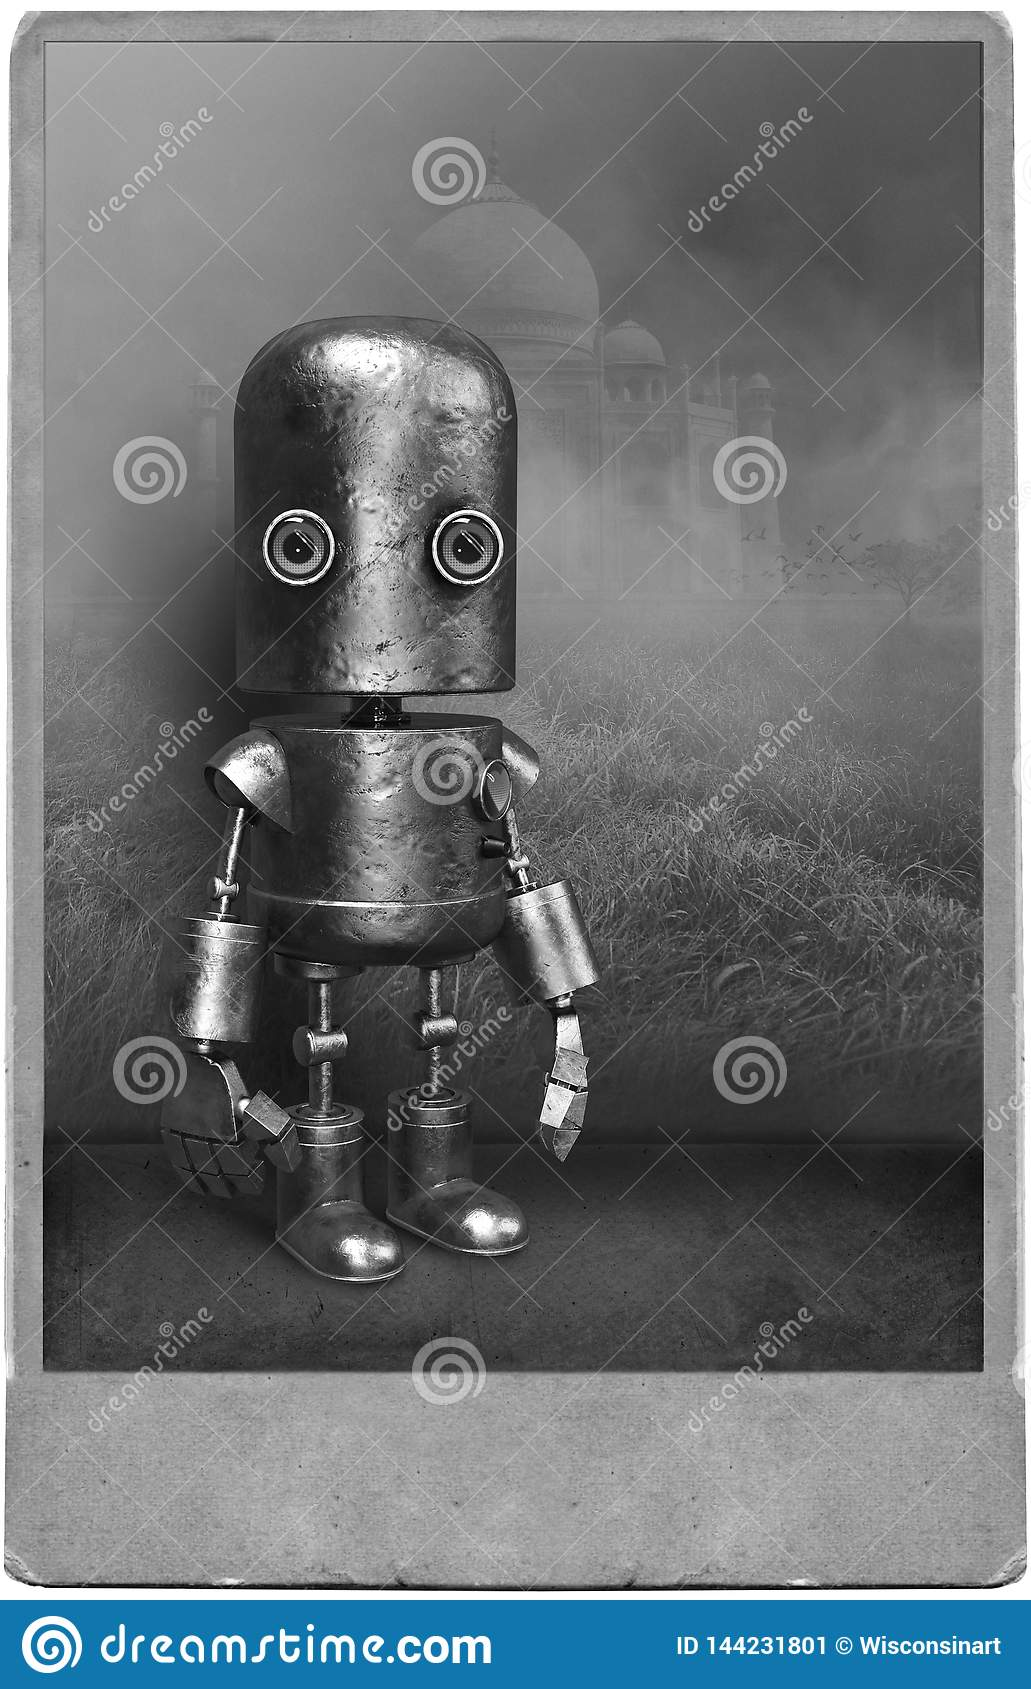 Surreal Vintage Robot Portrait, Mechanical Man